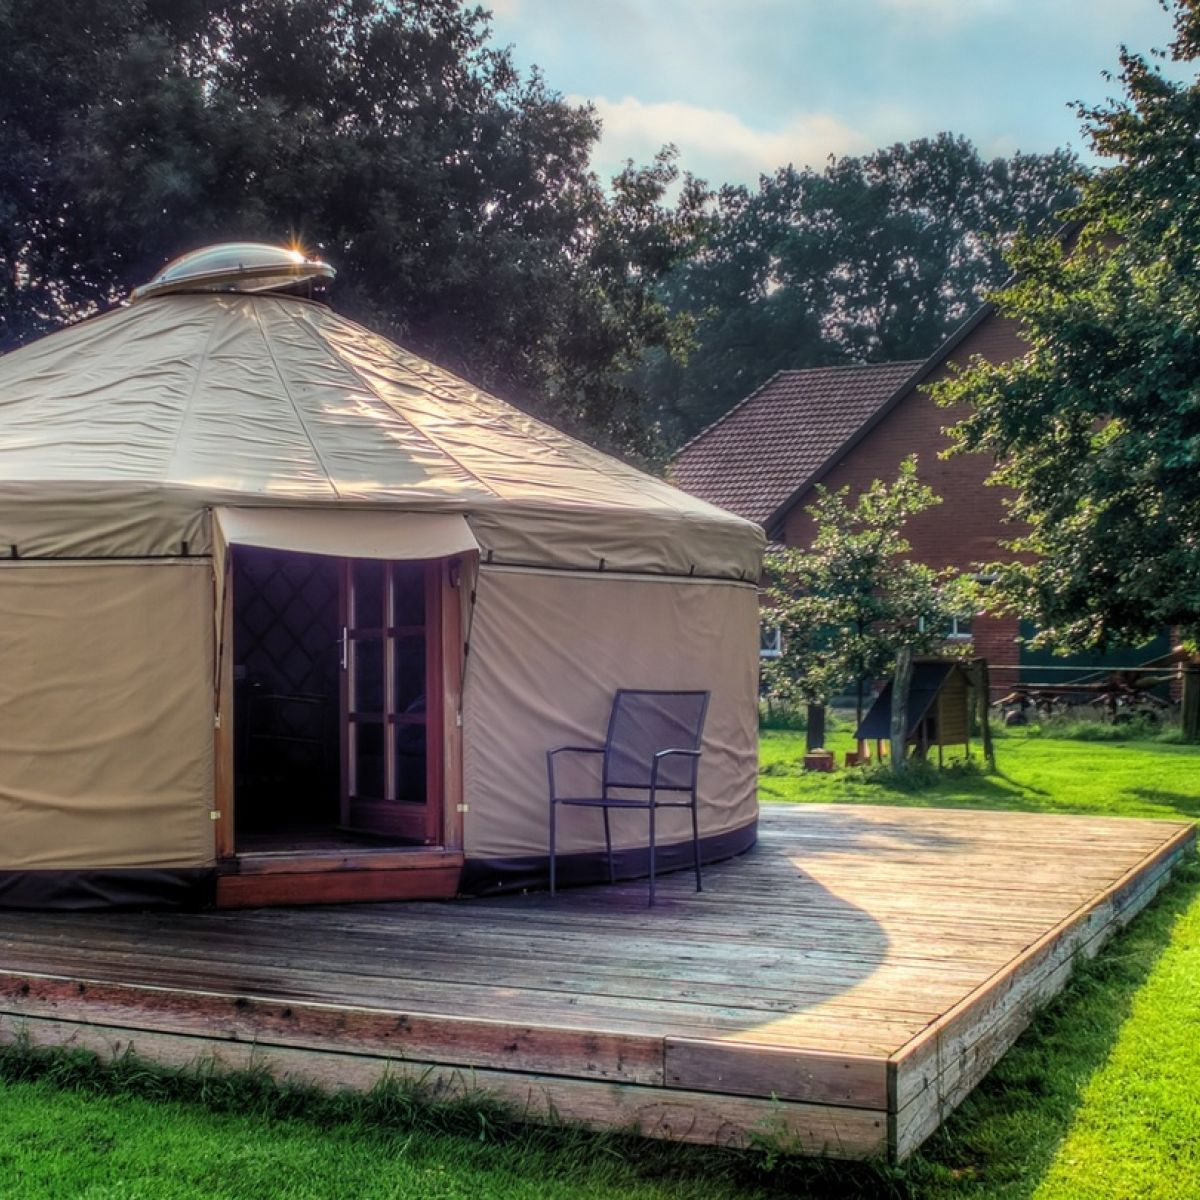 Do I Need Planning Permission To Erect A Yurt In My Garden Each floor plan is downloadable so you can share or hang. erect a yurt in my garden